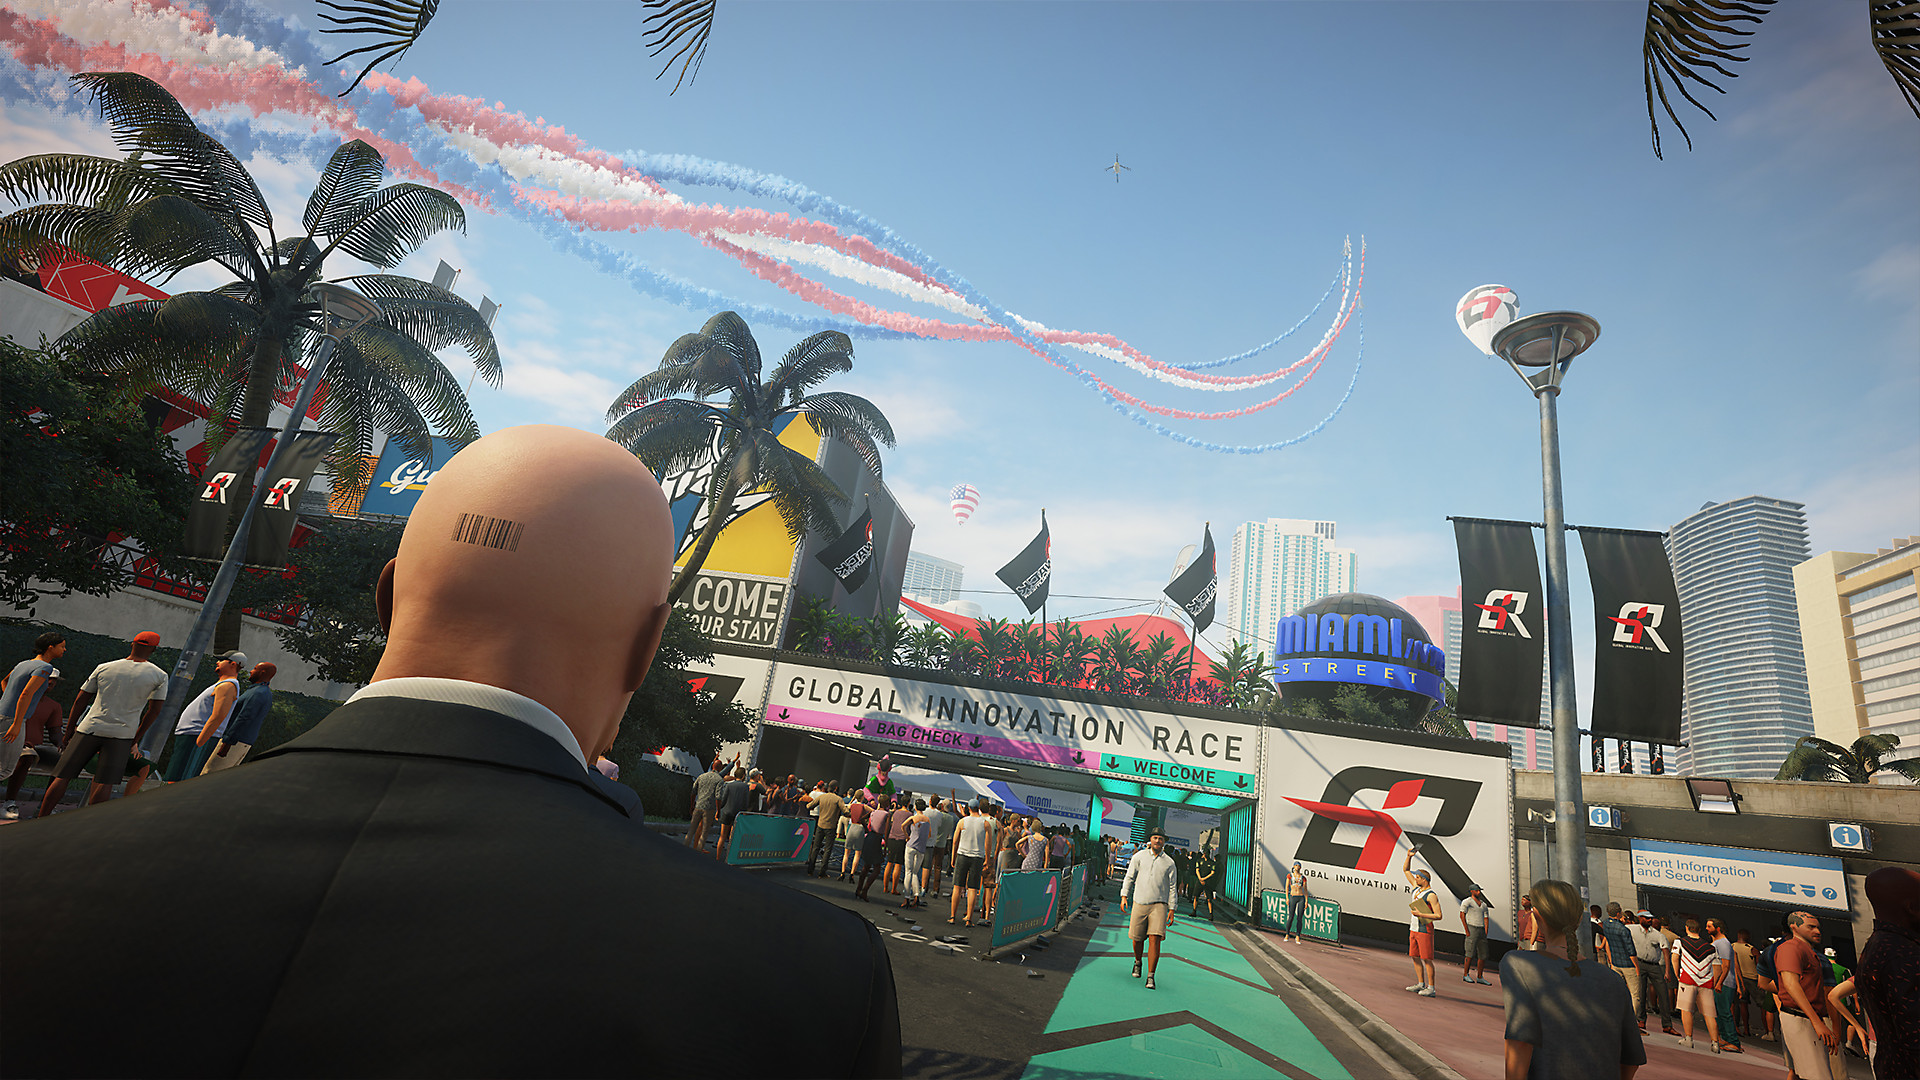 pc game hitman 2 gameplay